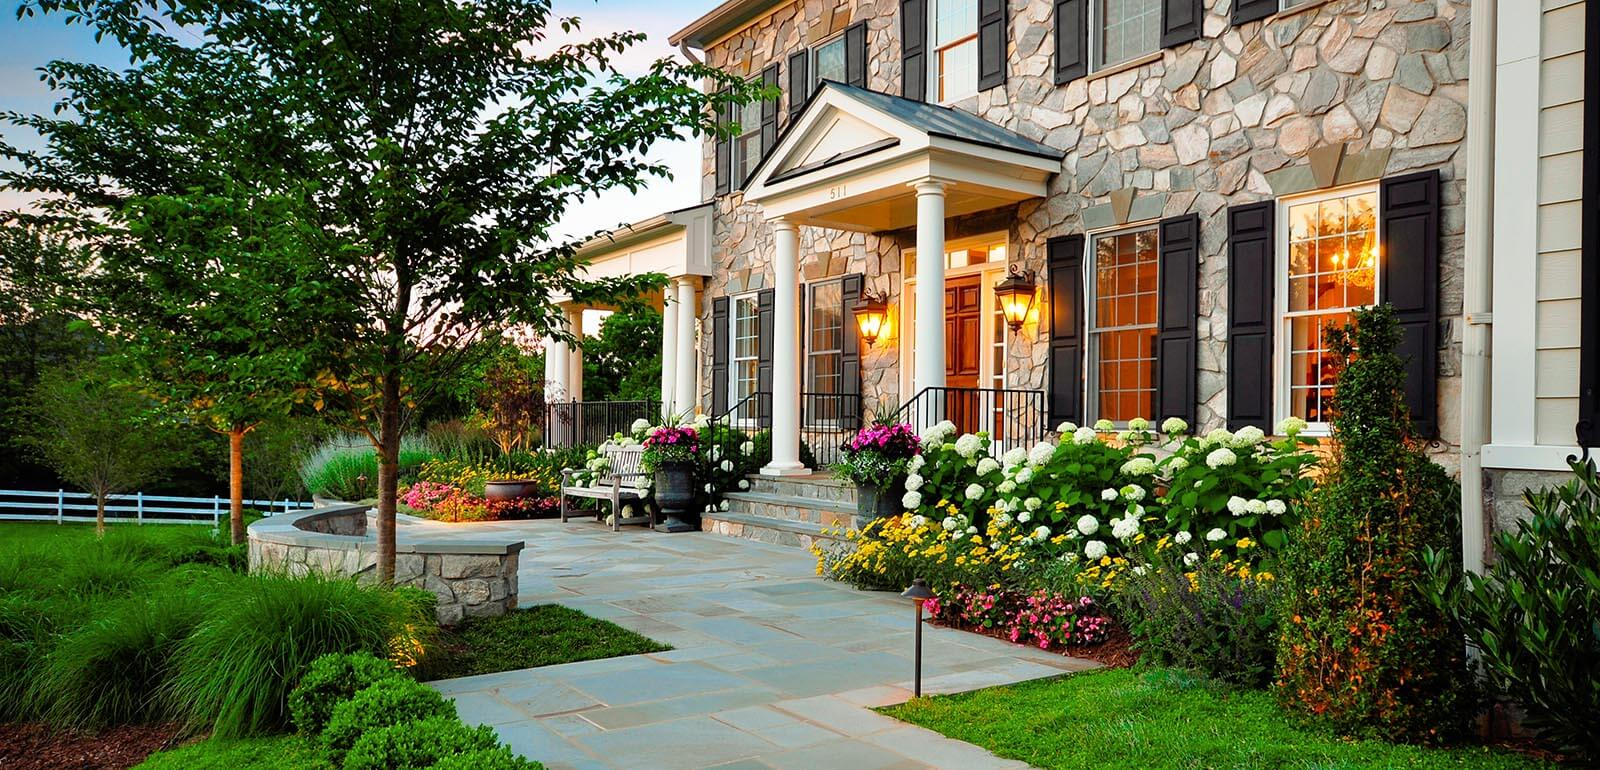 22 Most Beautiful Front Yard Landscaping Designs & Ideas ... on Front Yard And Backyard Landscaping Ideas id=87373